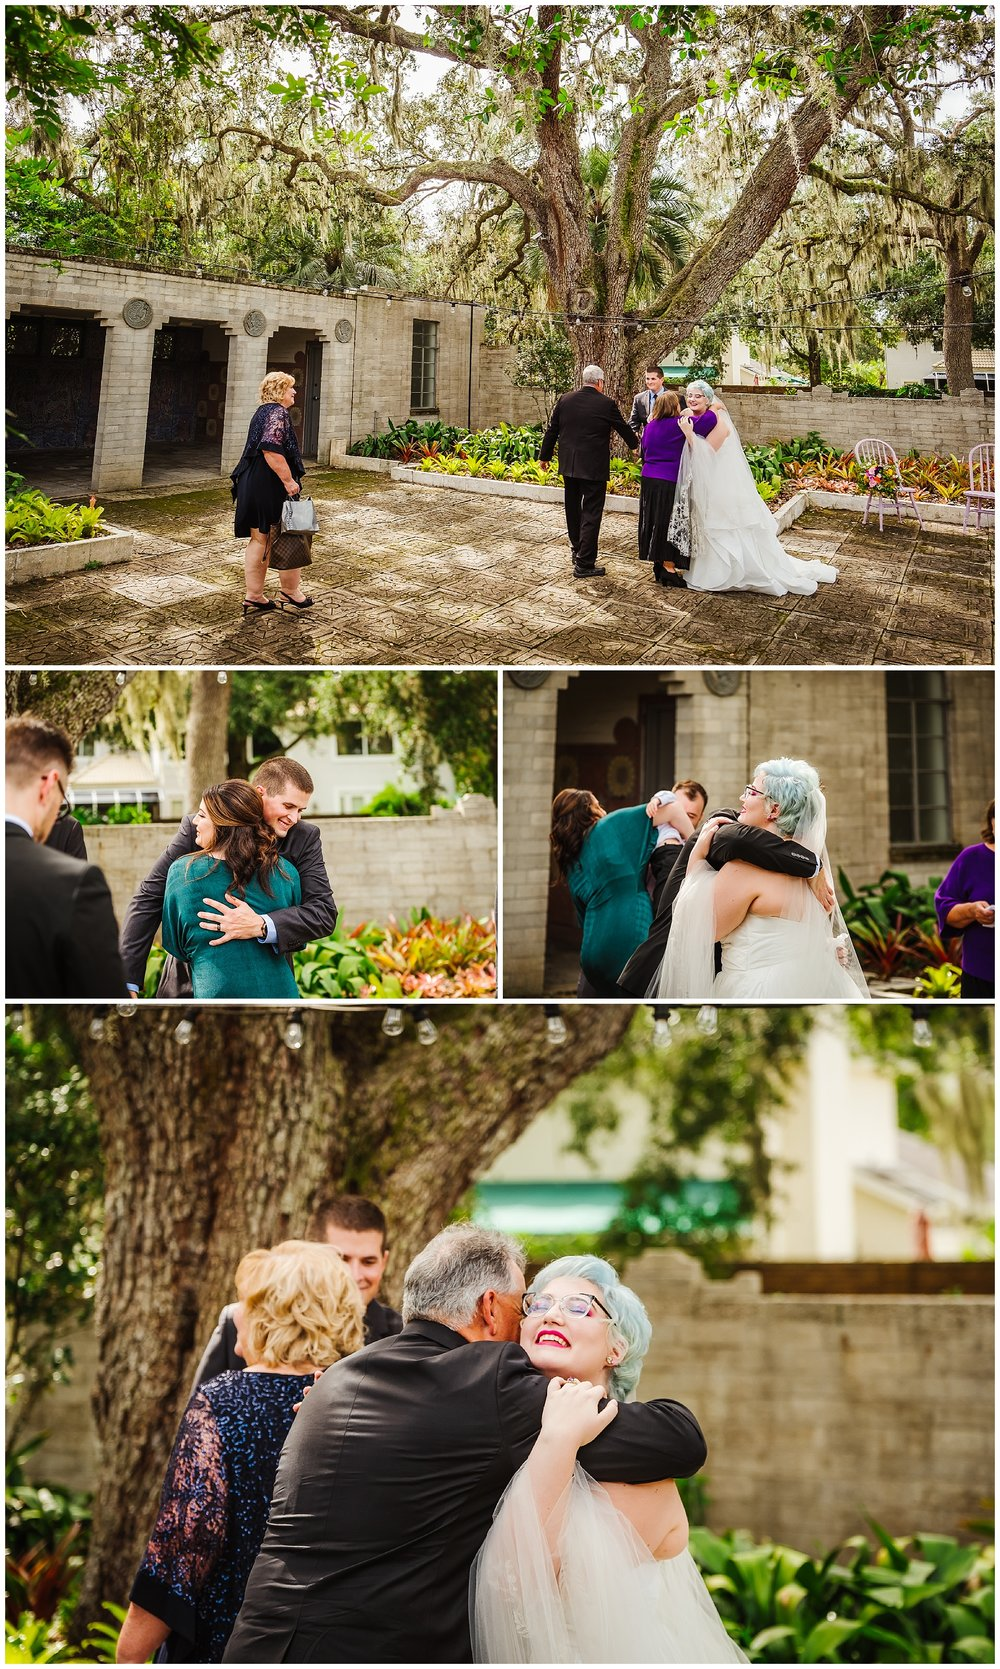 colorful-disney-elopement-micro-wedding-maitland-arts-center-orlando-photographer_0144.jpg